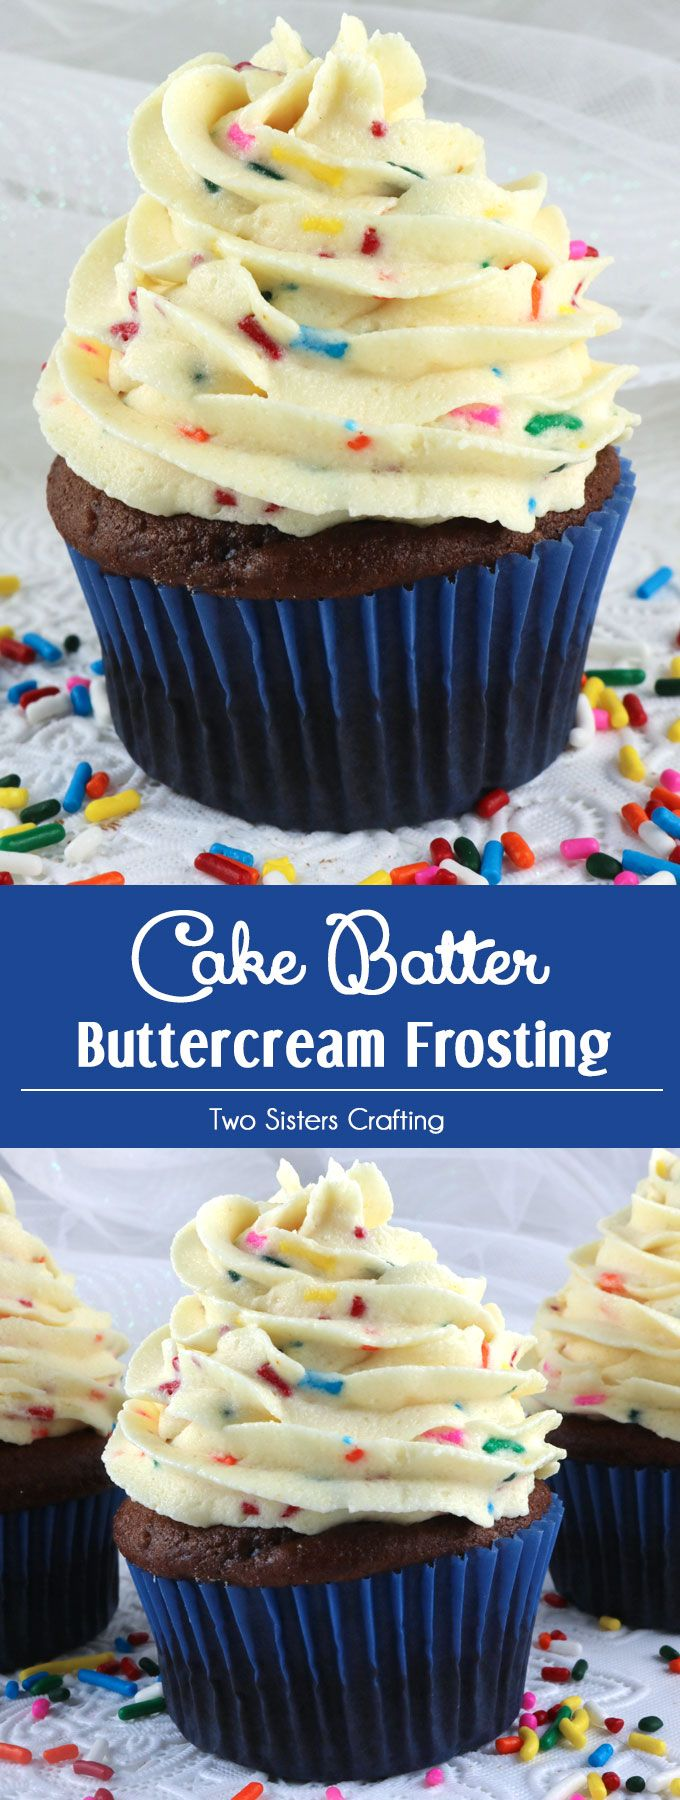 Cake Batter Buttercream Frosting - our delicious buttercream frosting flavored with cake mix and sprinkles. Sweet, creamy and colorful, this yummy homemade butter cream frosting will take your Birthday Cakes and Birthday Cupcakes to the next level, we promise! Pin this tasty Cake Batter Icing for later and follow us for more great Frosting Recipes!